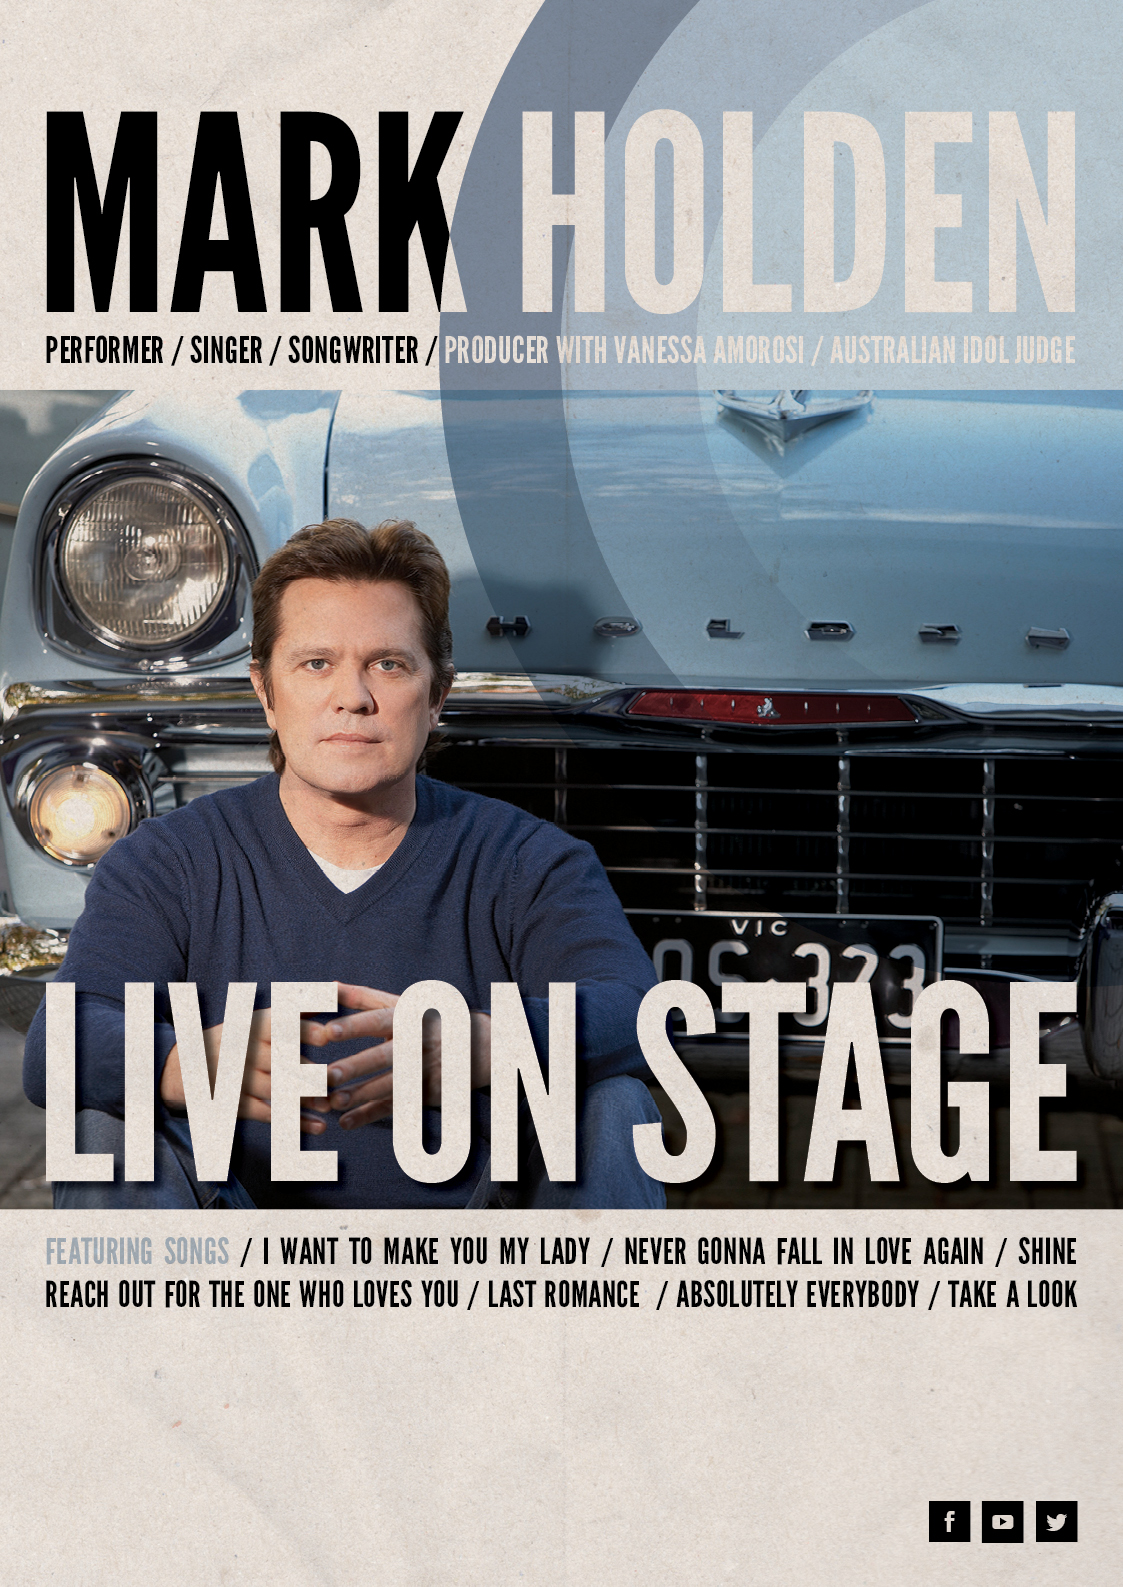 Mark-Holden-A3-Poster_01